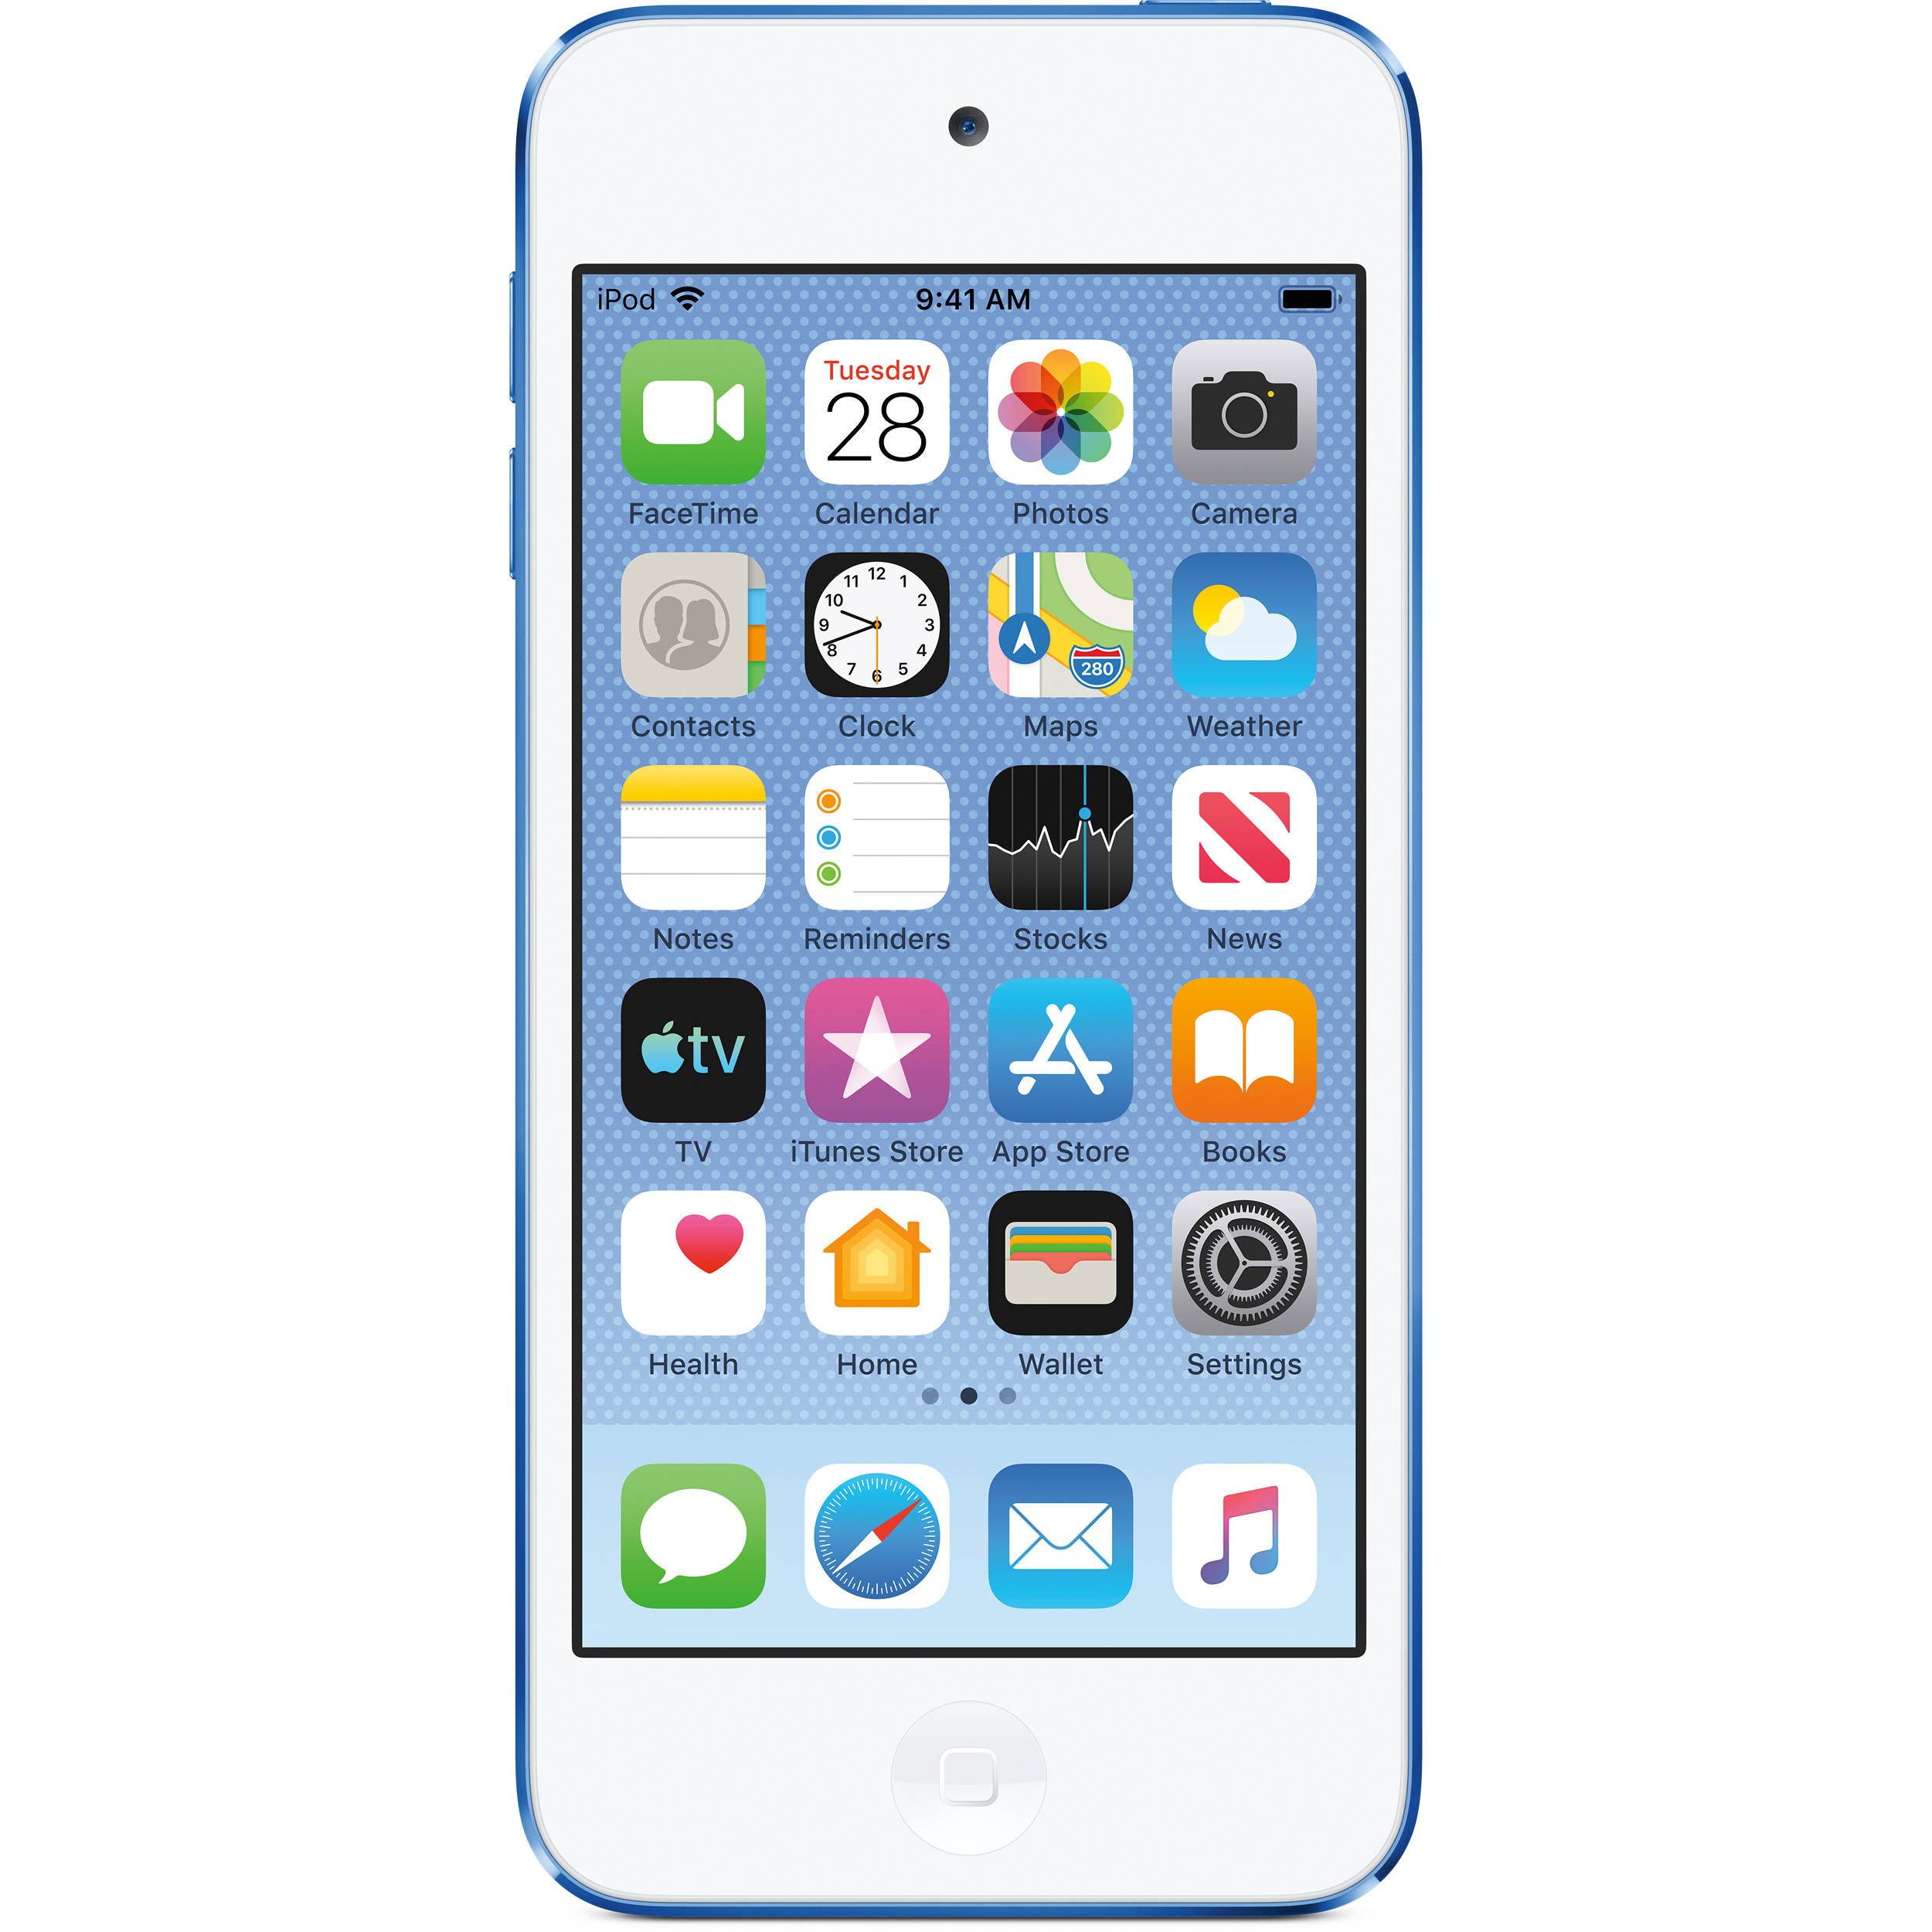 Apple 128GB iPod touch (7th Generation, Blue) MVJ32LL/A B&H